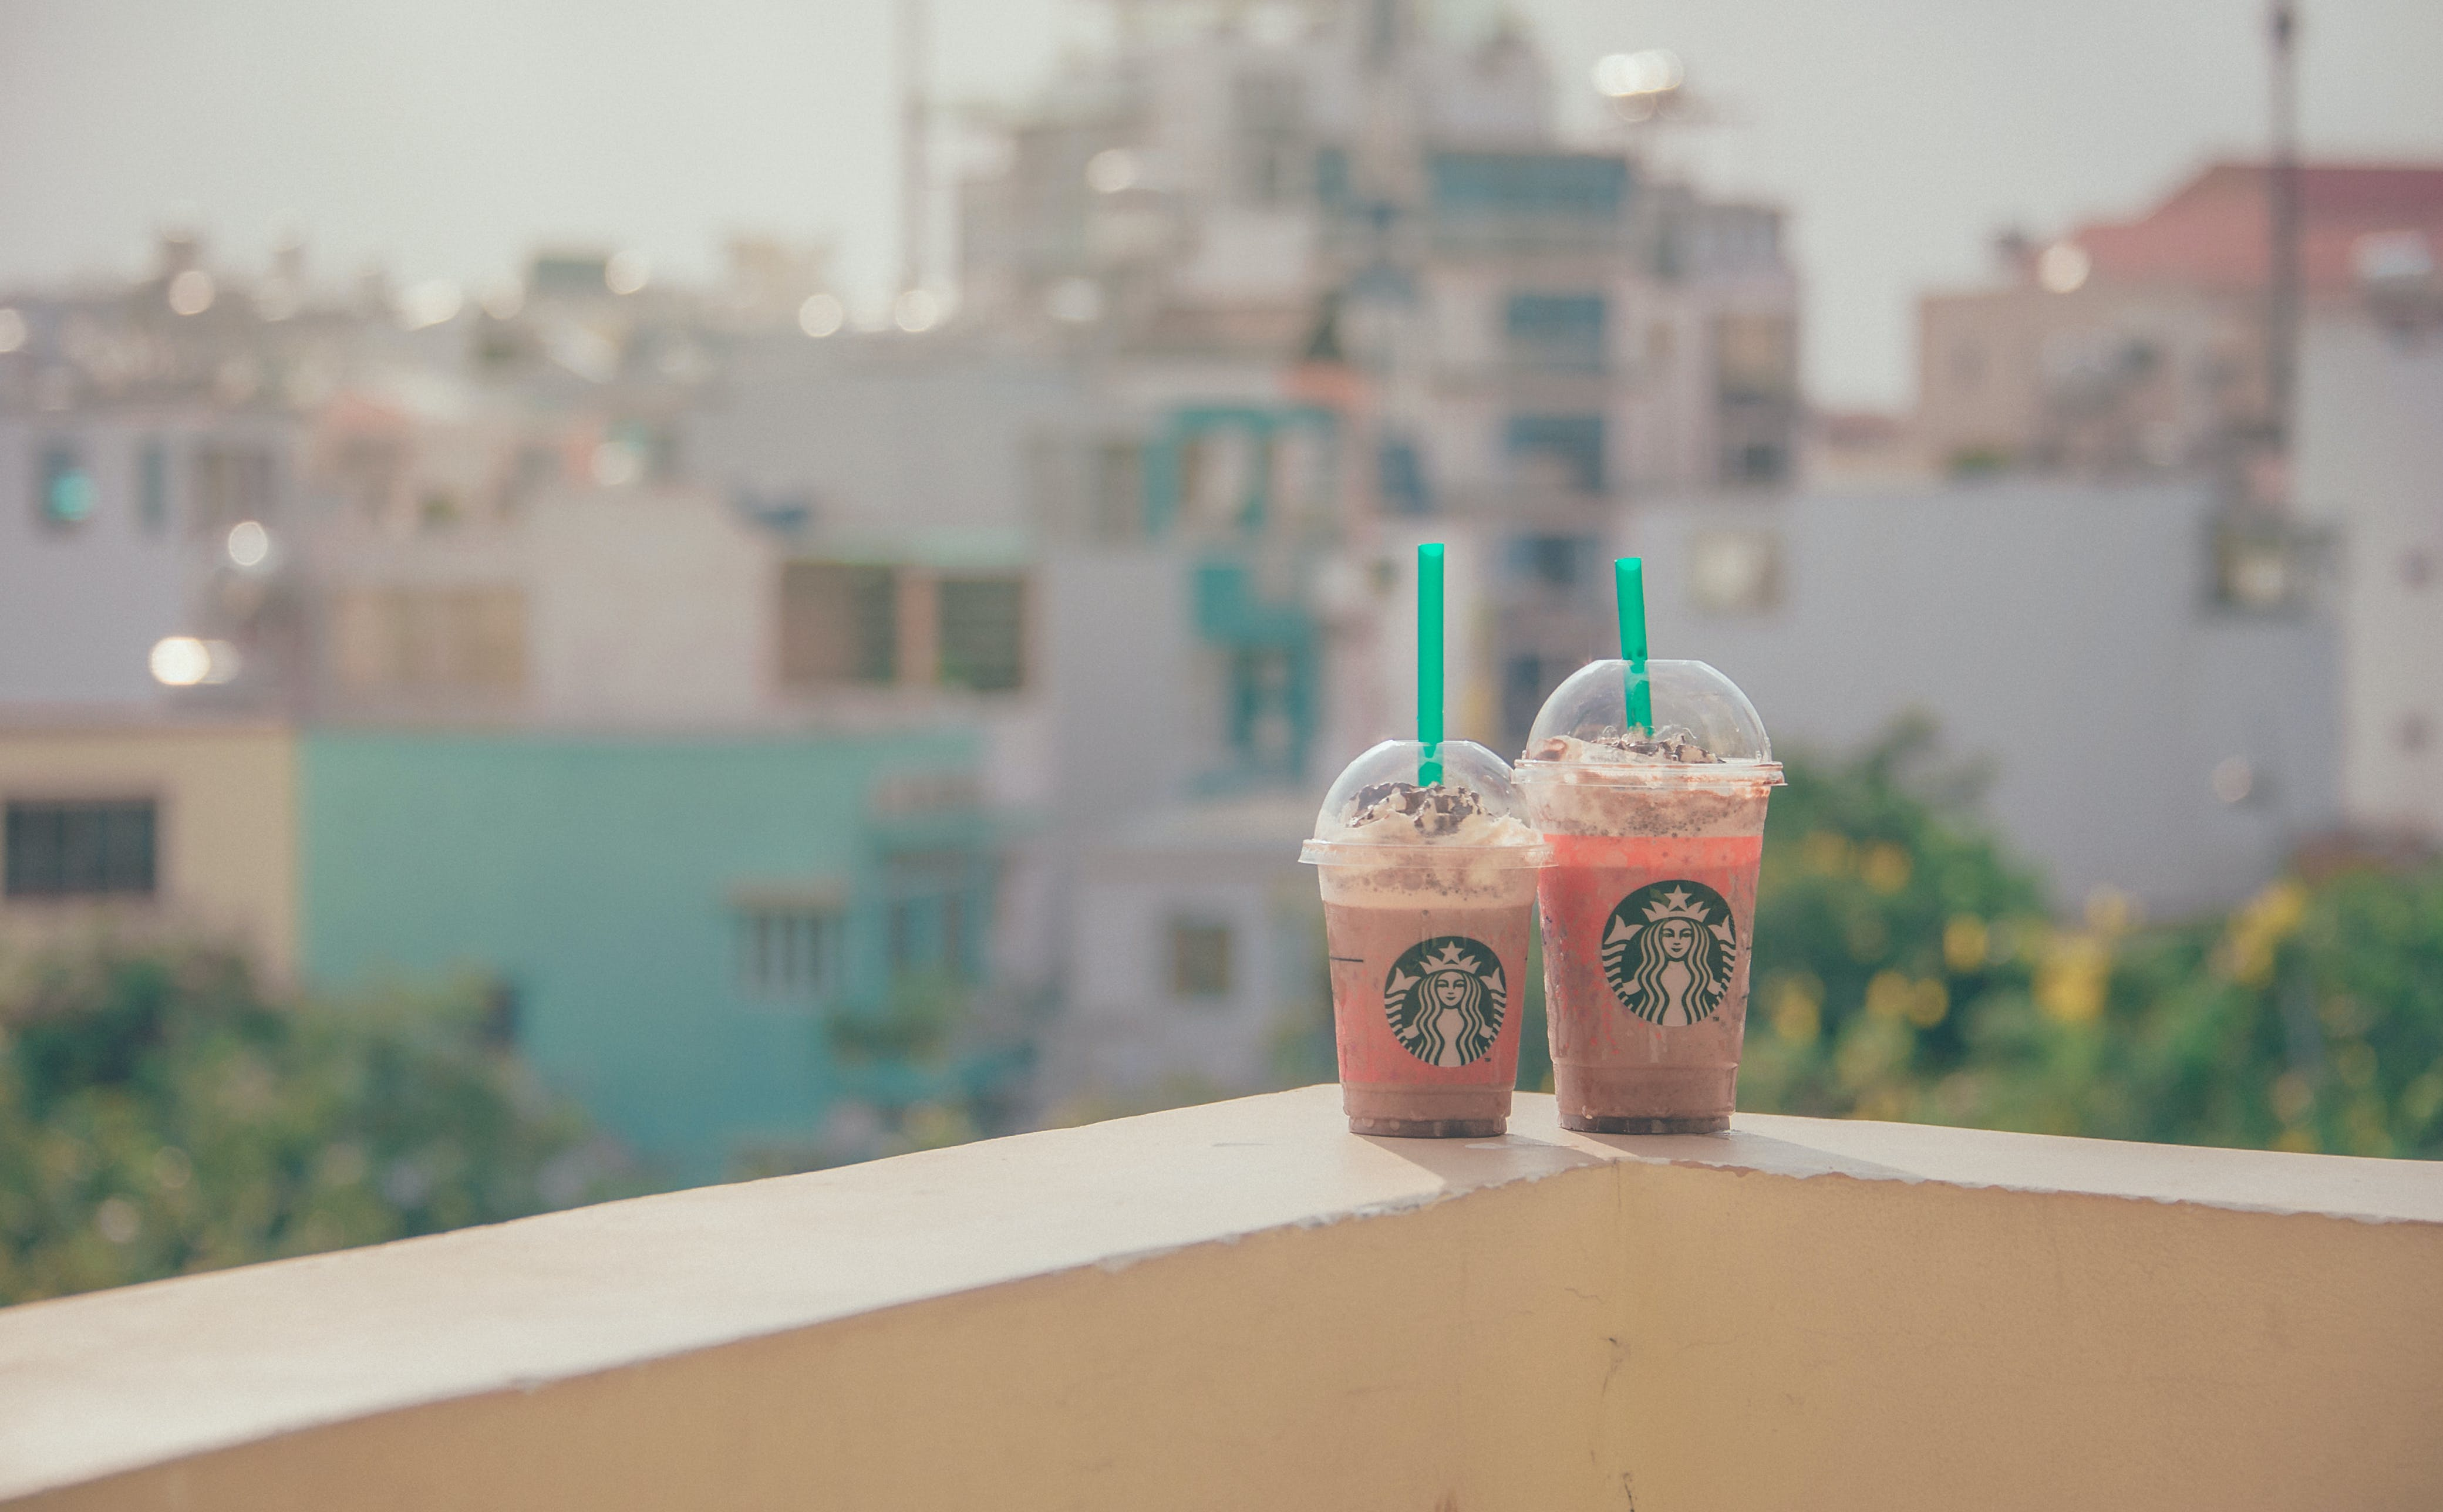 Close-Up Photography of Two Starbucks Disposable Cups